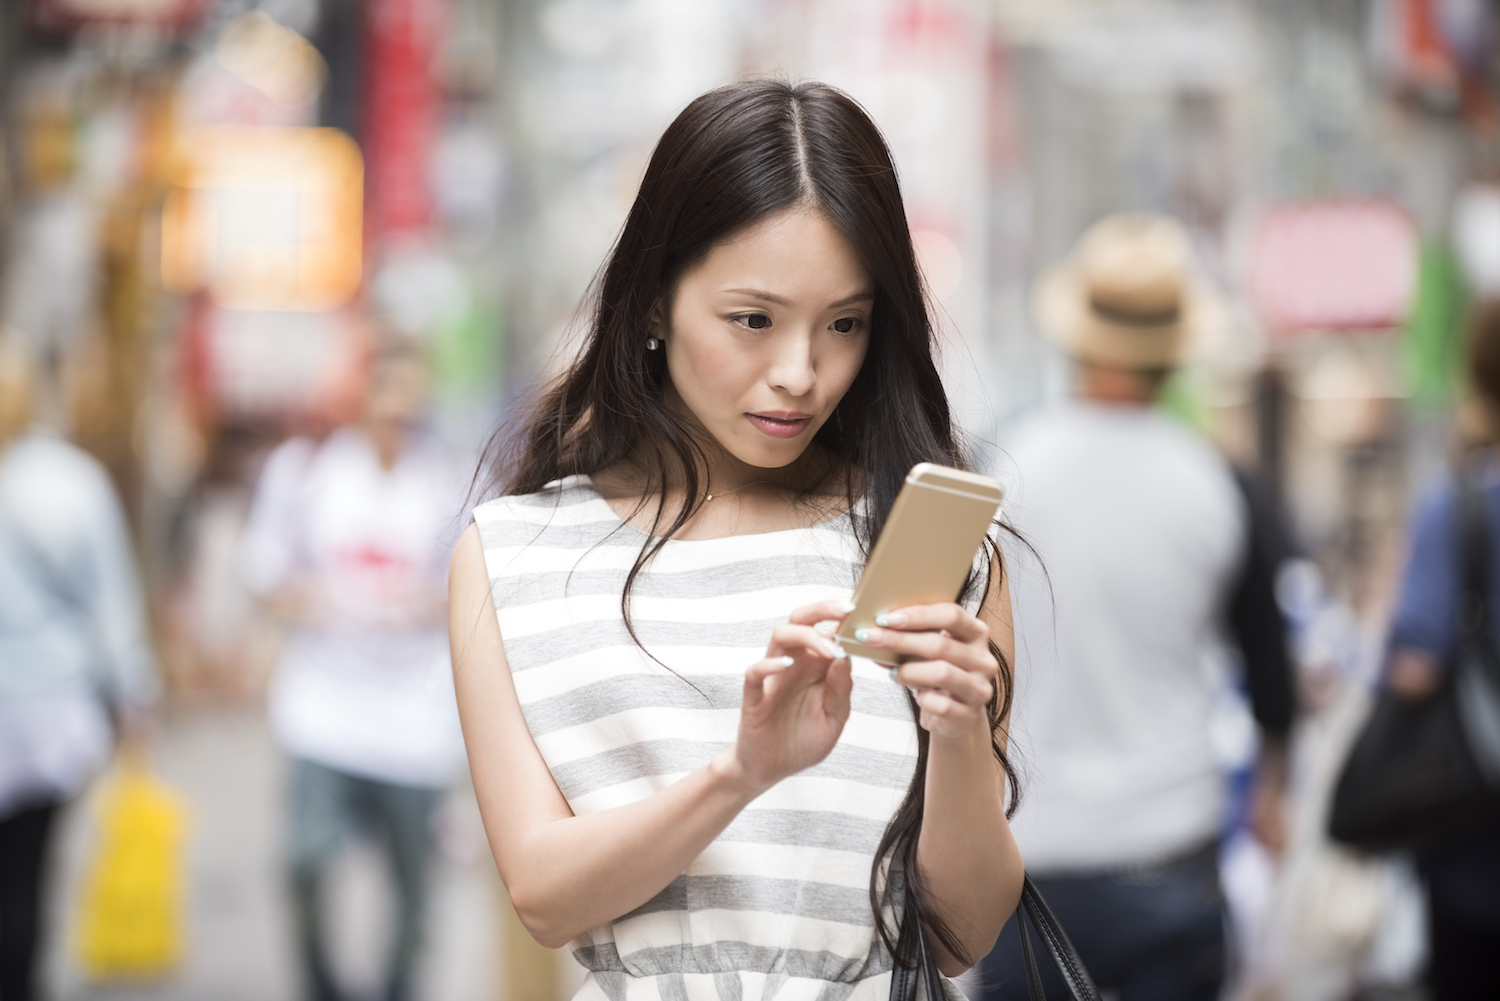 Attractive young Japanese woman using mobile phone to send text message while on the go in urban street in Shibuya, Tokyo, Japan. Asian female using smartphone outdoors.